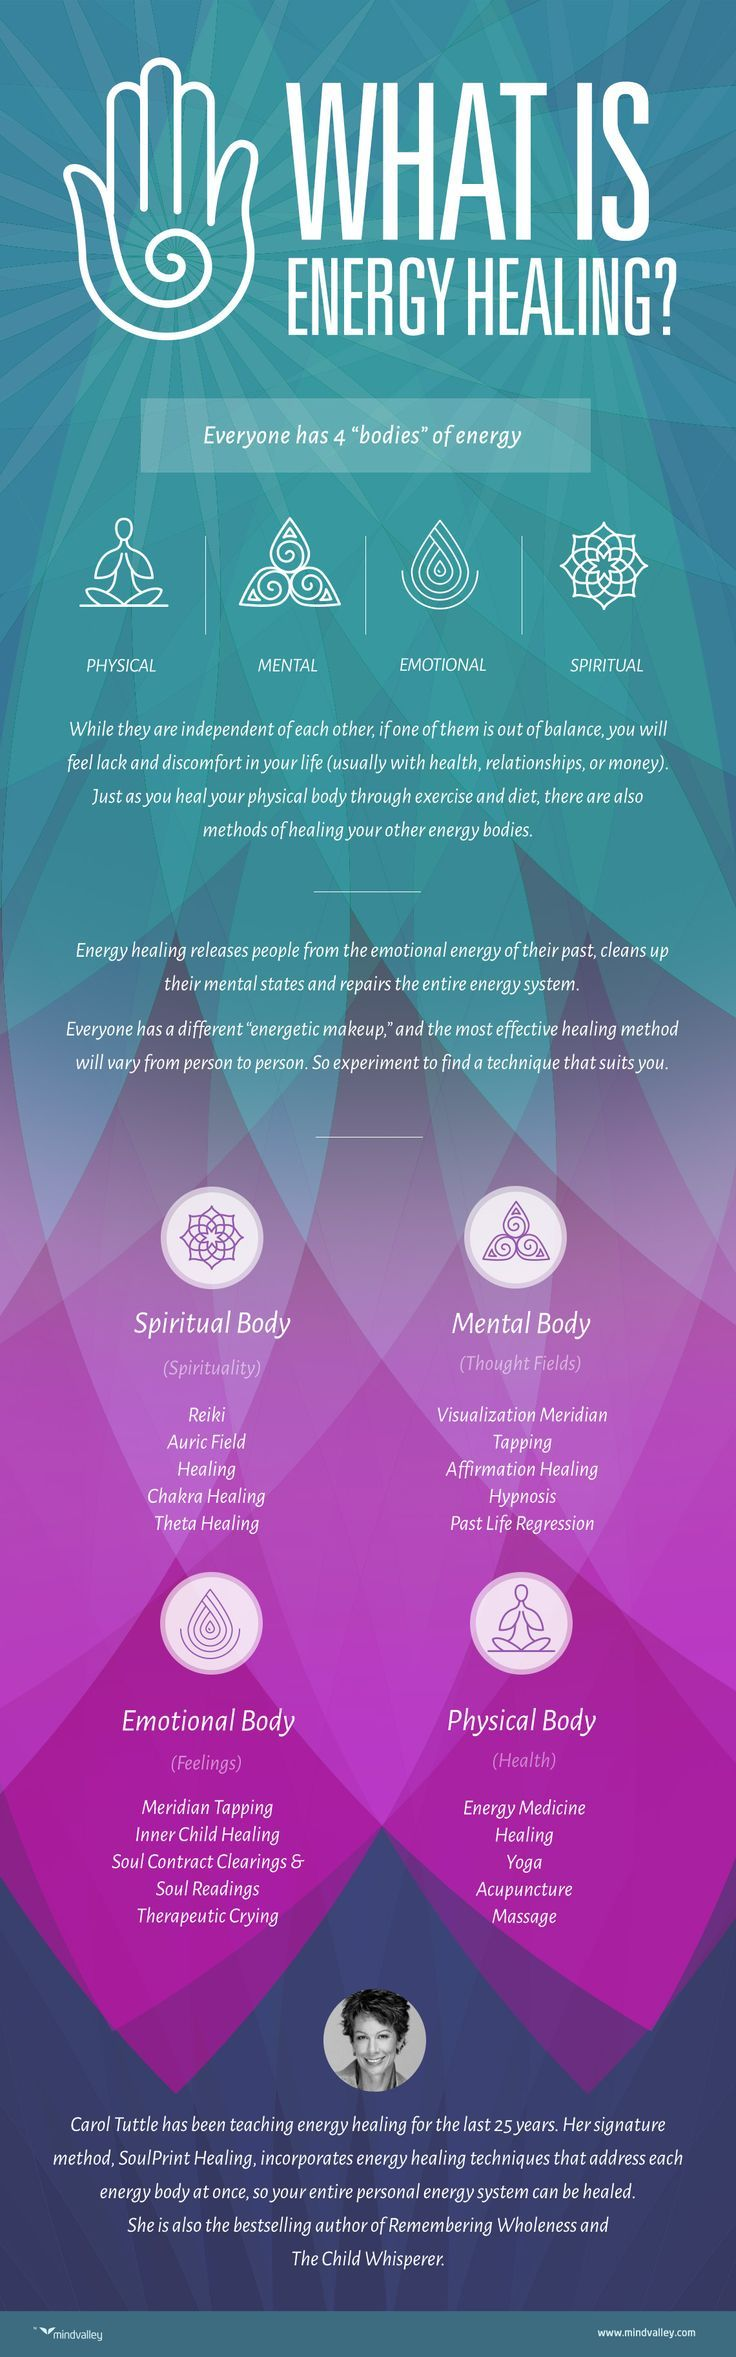 What Is Energy Healing, With so many different approaches and techniques discovered over the century, the term u201cenergy healingu201d has grown in meaning. We spoke to Carol Tuttle, Americau2019s most trusted energy healer, to help us understand the basics of this complex subject. selfimprove.co/...